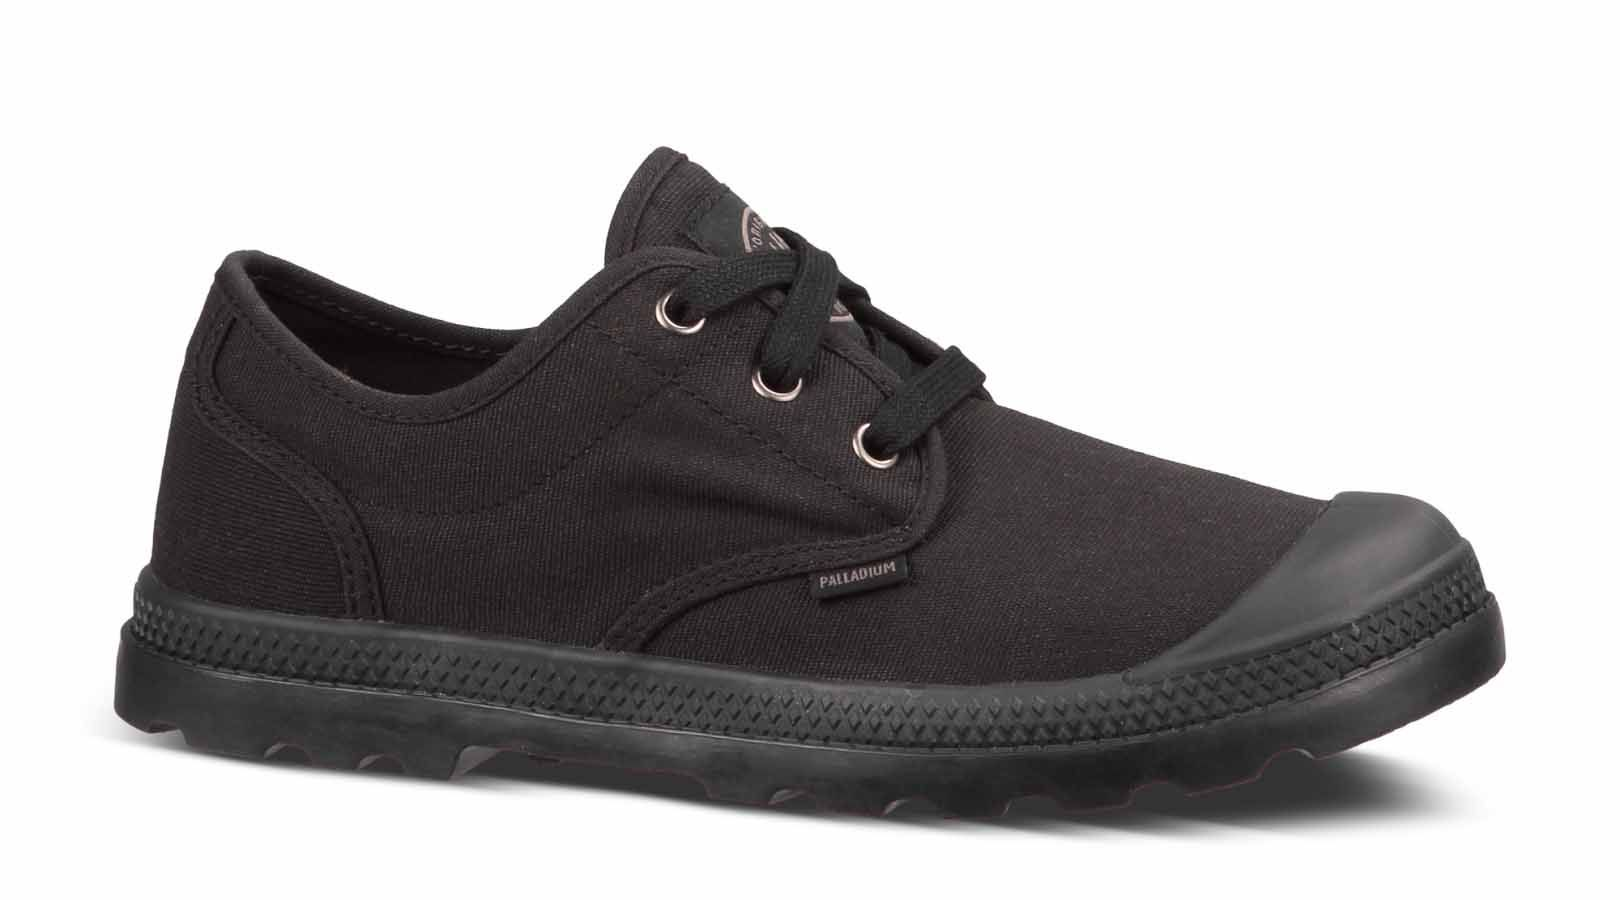 93315-060 WOMENS Pampa Oxford LP, Black/Black